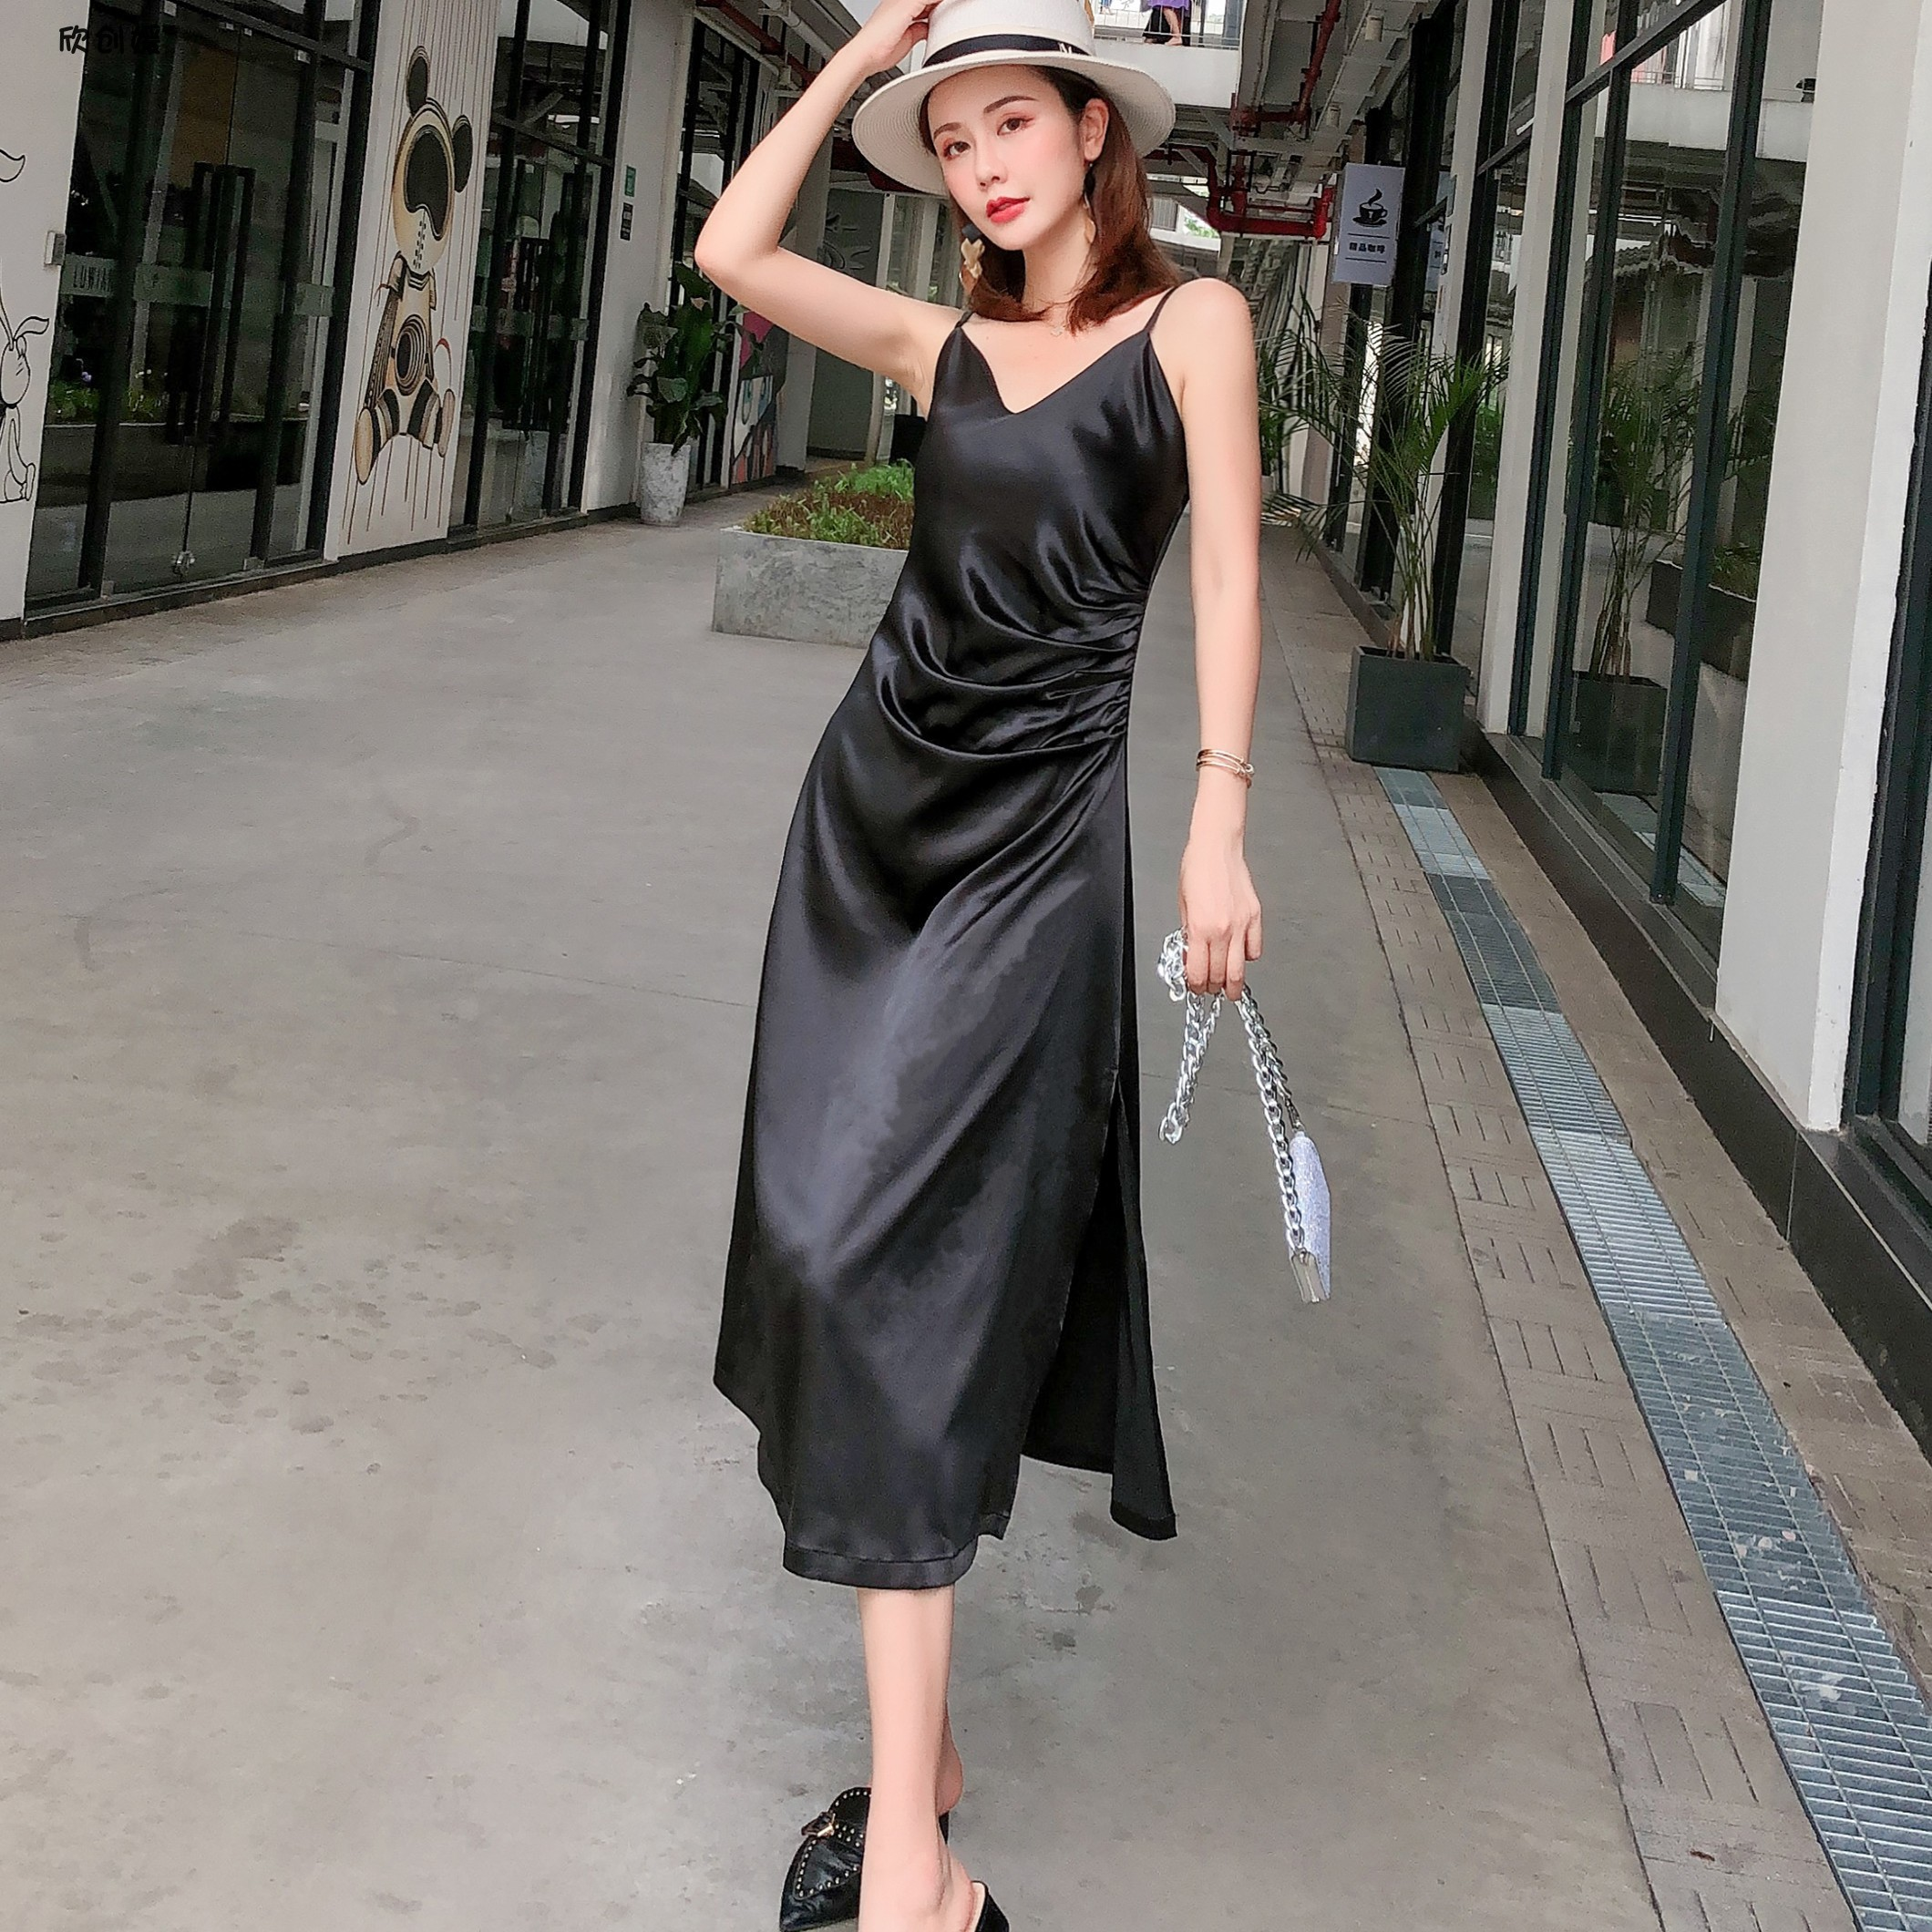 Bright Satin collarbone SLING DRESS 2020 New Summer Black silky Satin pleated strapless dress